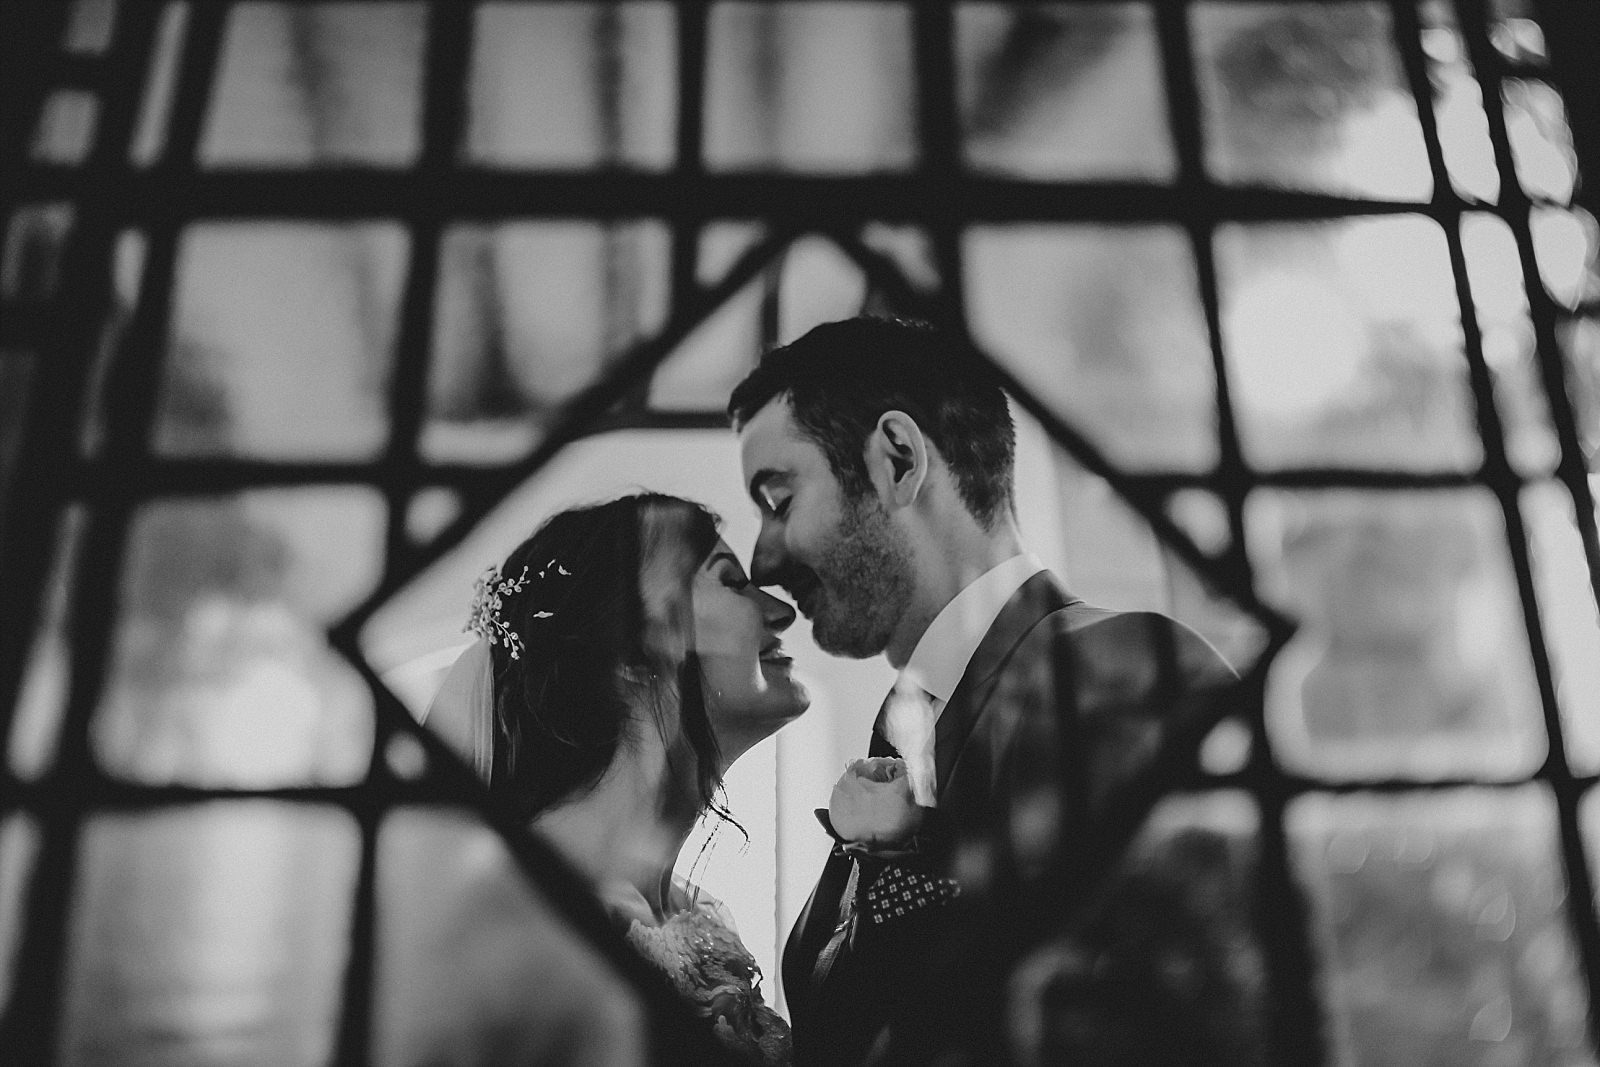 eaves hall wedding photographer uses the stained glass at st wilfrids churc, longridge